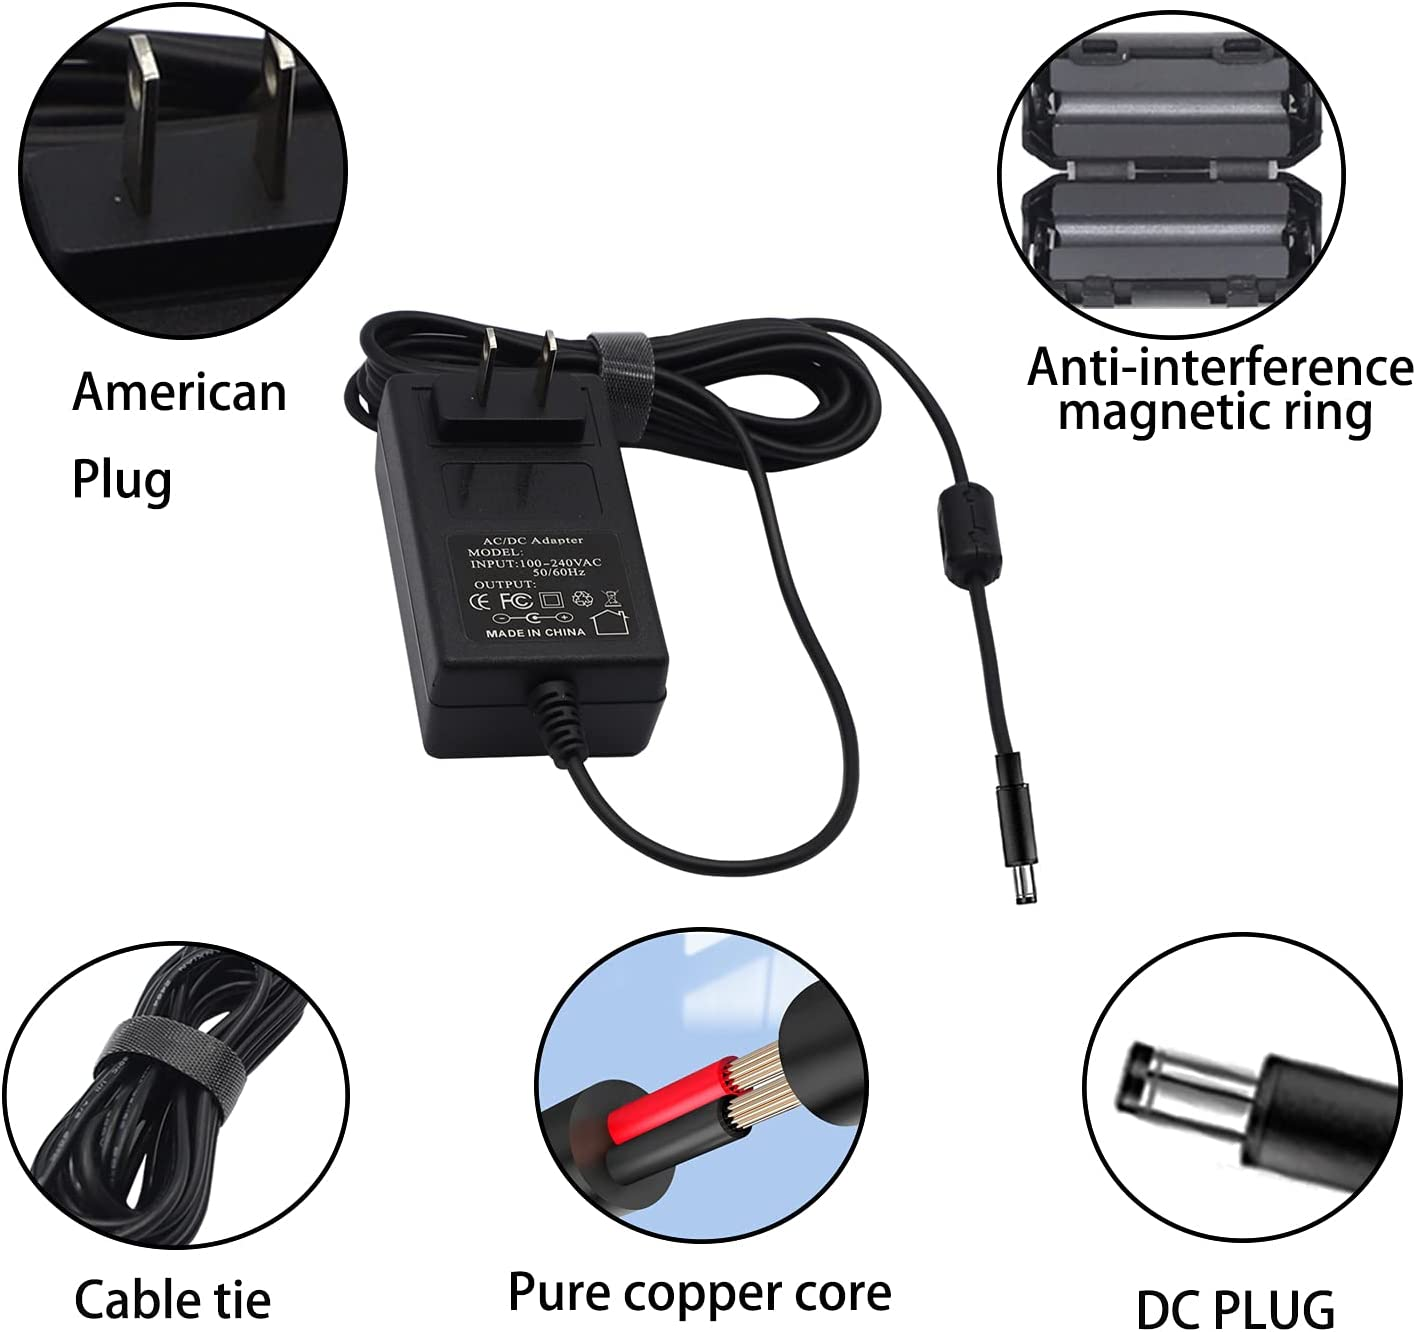 15V 3A AC/DC Power Supply Adapter Charger DC Plug 5.5x2.1mm & 2.5mm Center Positive for 15 Volt 1A 2A 2.1A 2.2A 2.3A 2.4A 2.5A 2.6A 2.7A 2.8A 2.9A 3A, 1000mA~3000mA Equipment Charger Cable Cord 6.6 ft